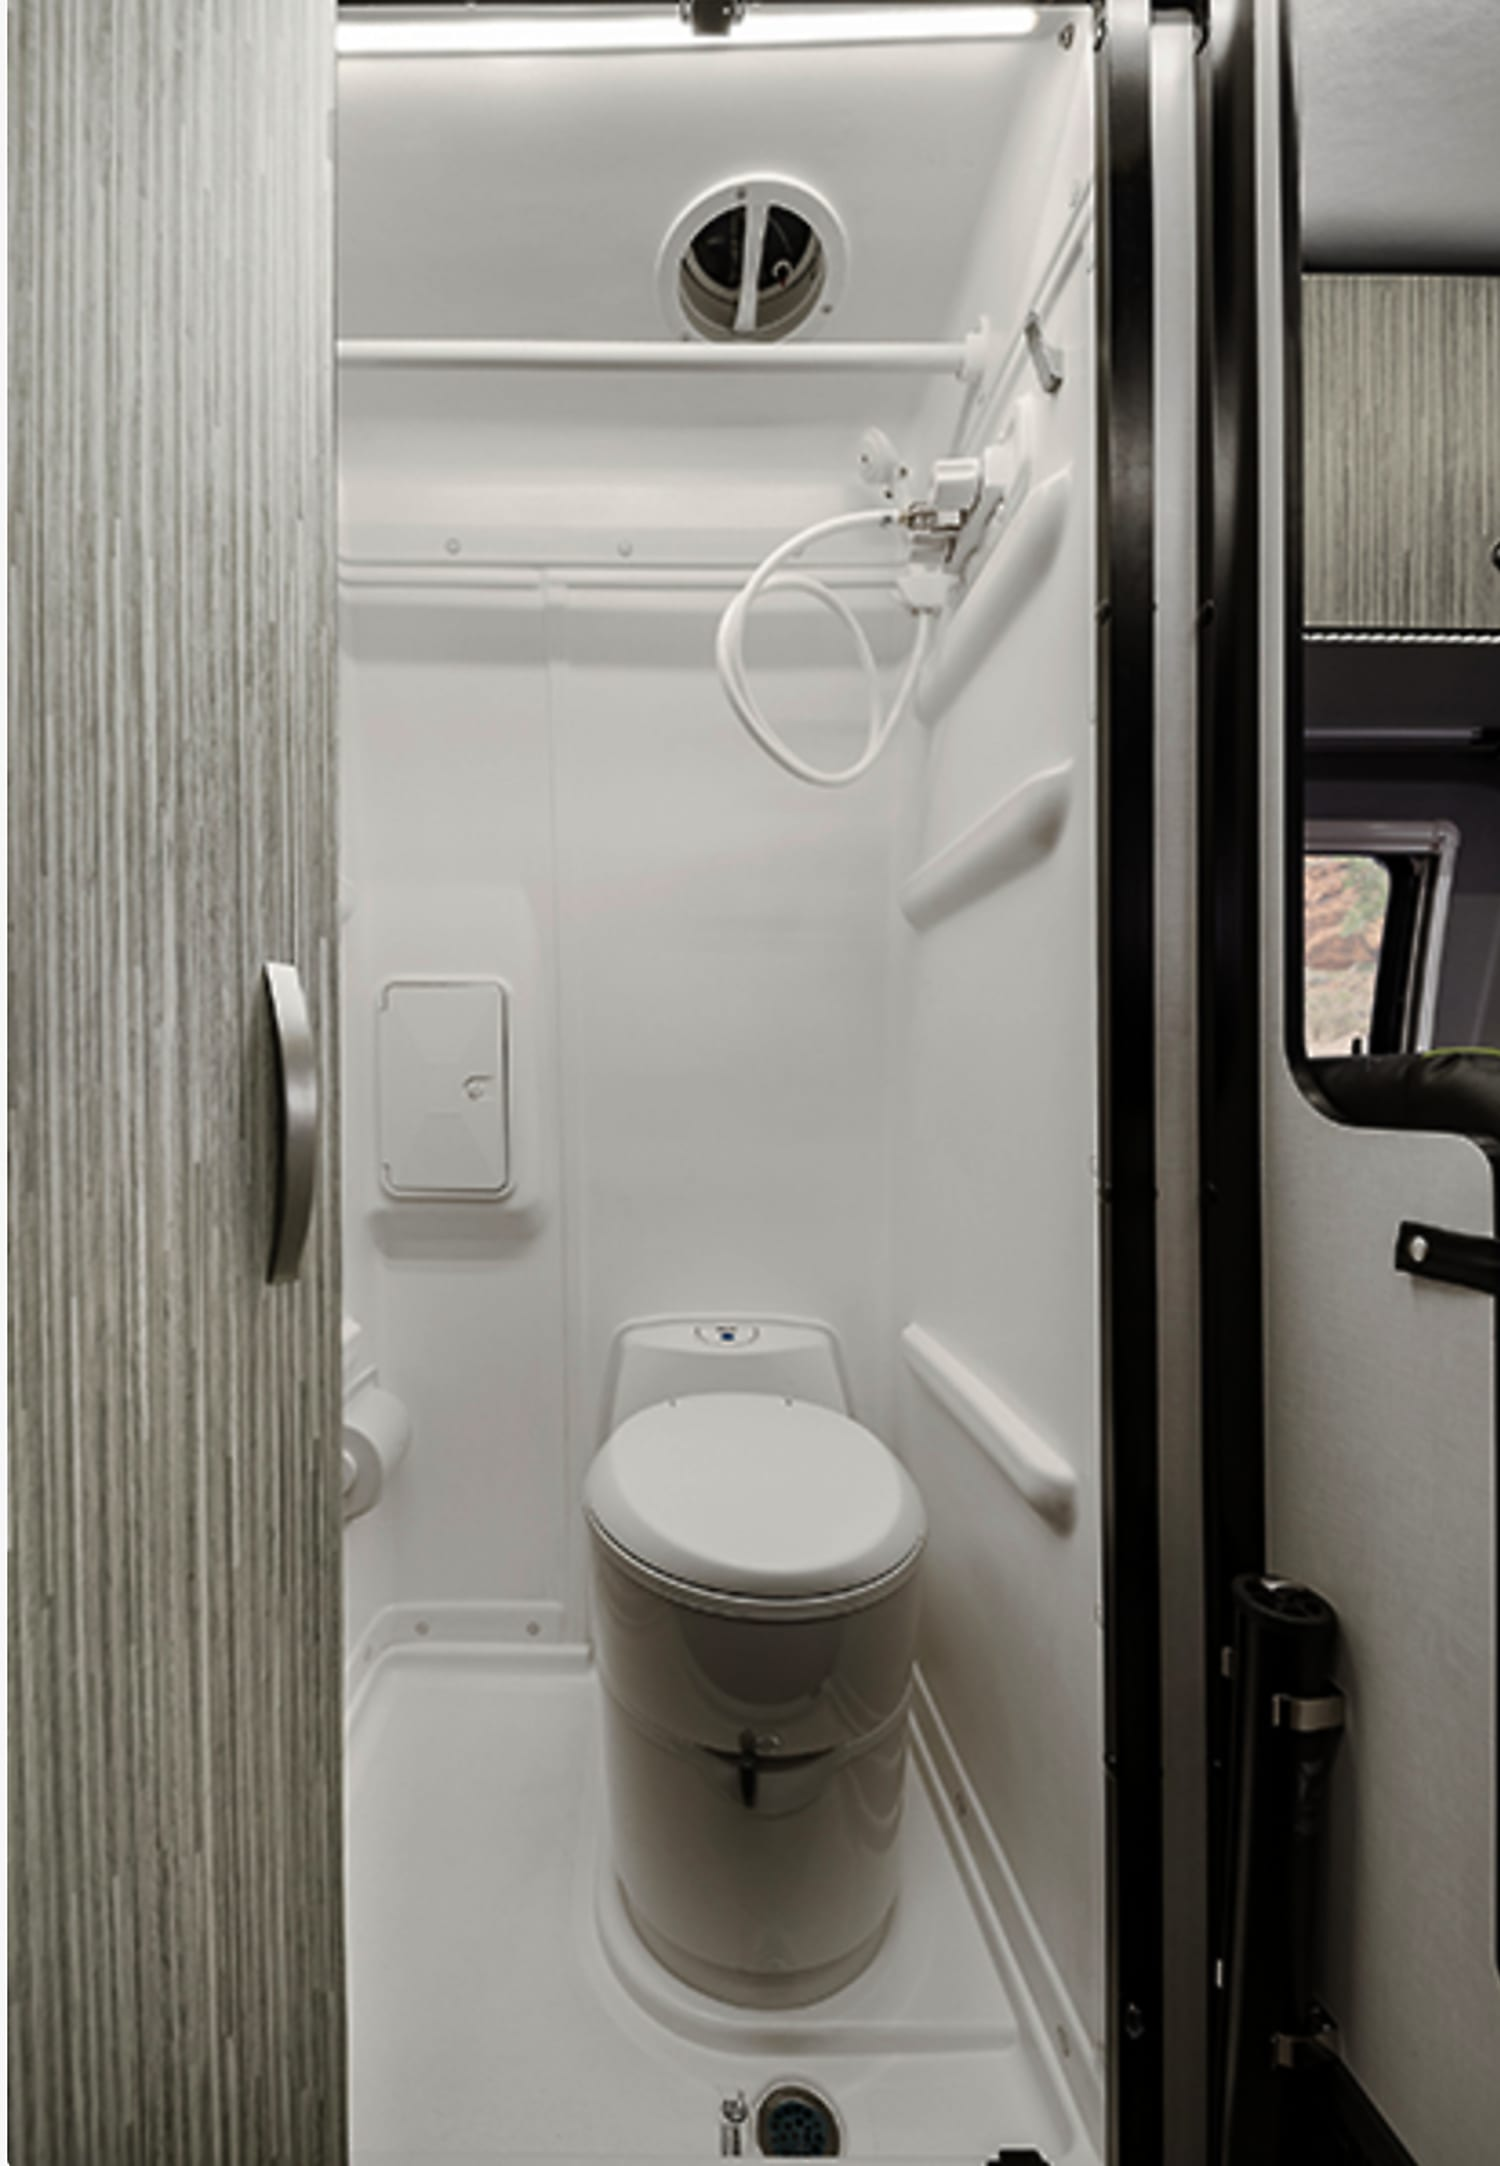 The wet bath has a flushing water cassette toilet and hand-held shower head wand. Wet bath can be used as storage/closet by adding shelves.. Mercedes SPRINTER 2020